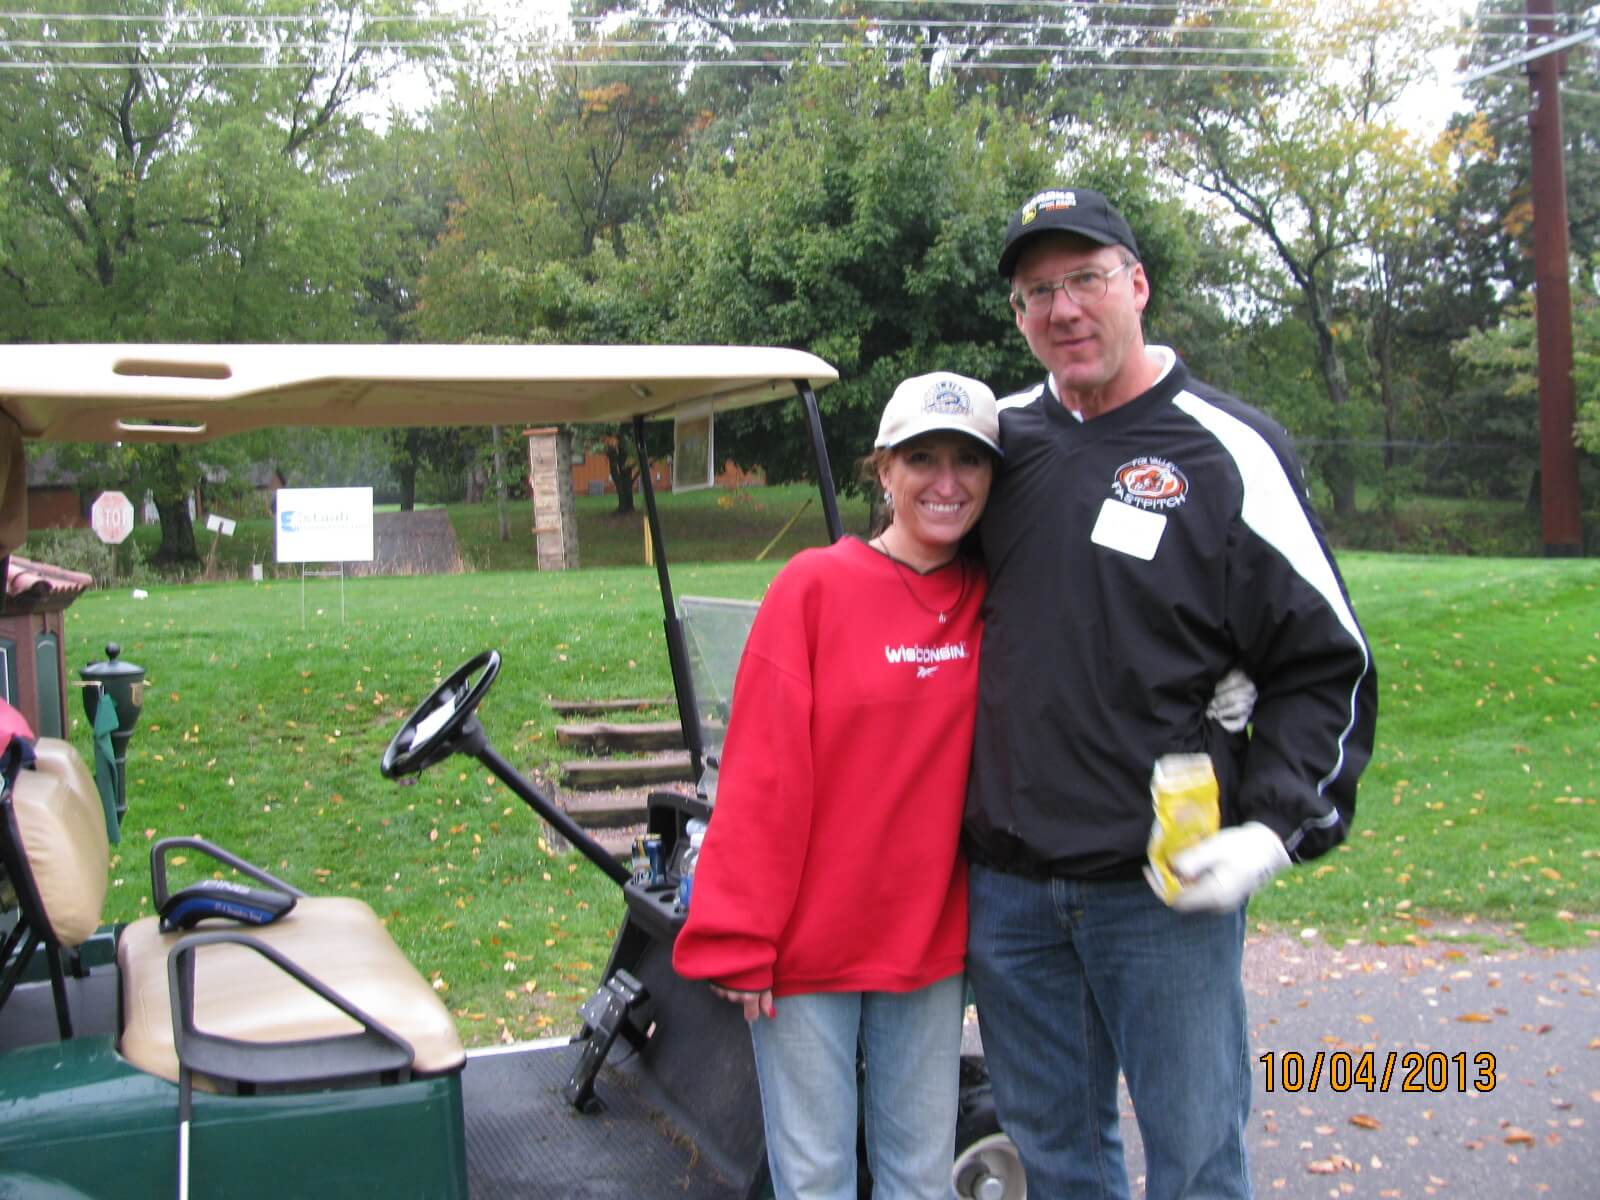 Cruise-for-a-cause-golf-outing-slideshow-3.jpg